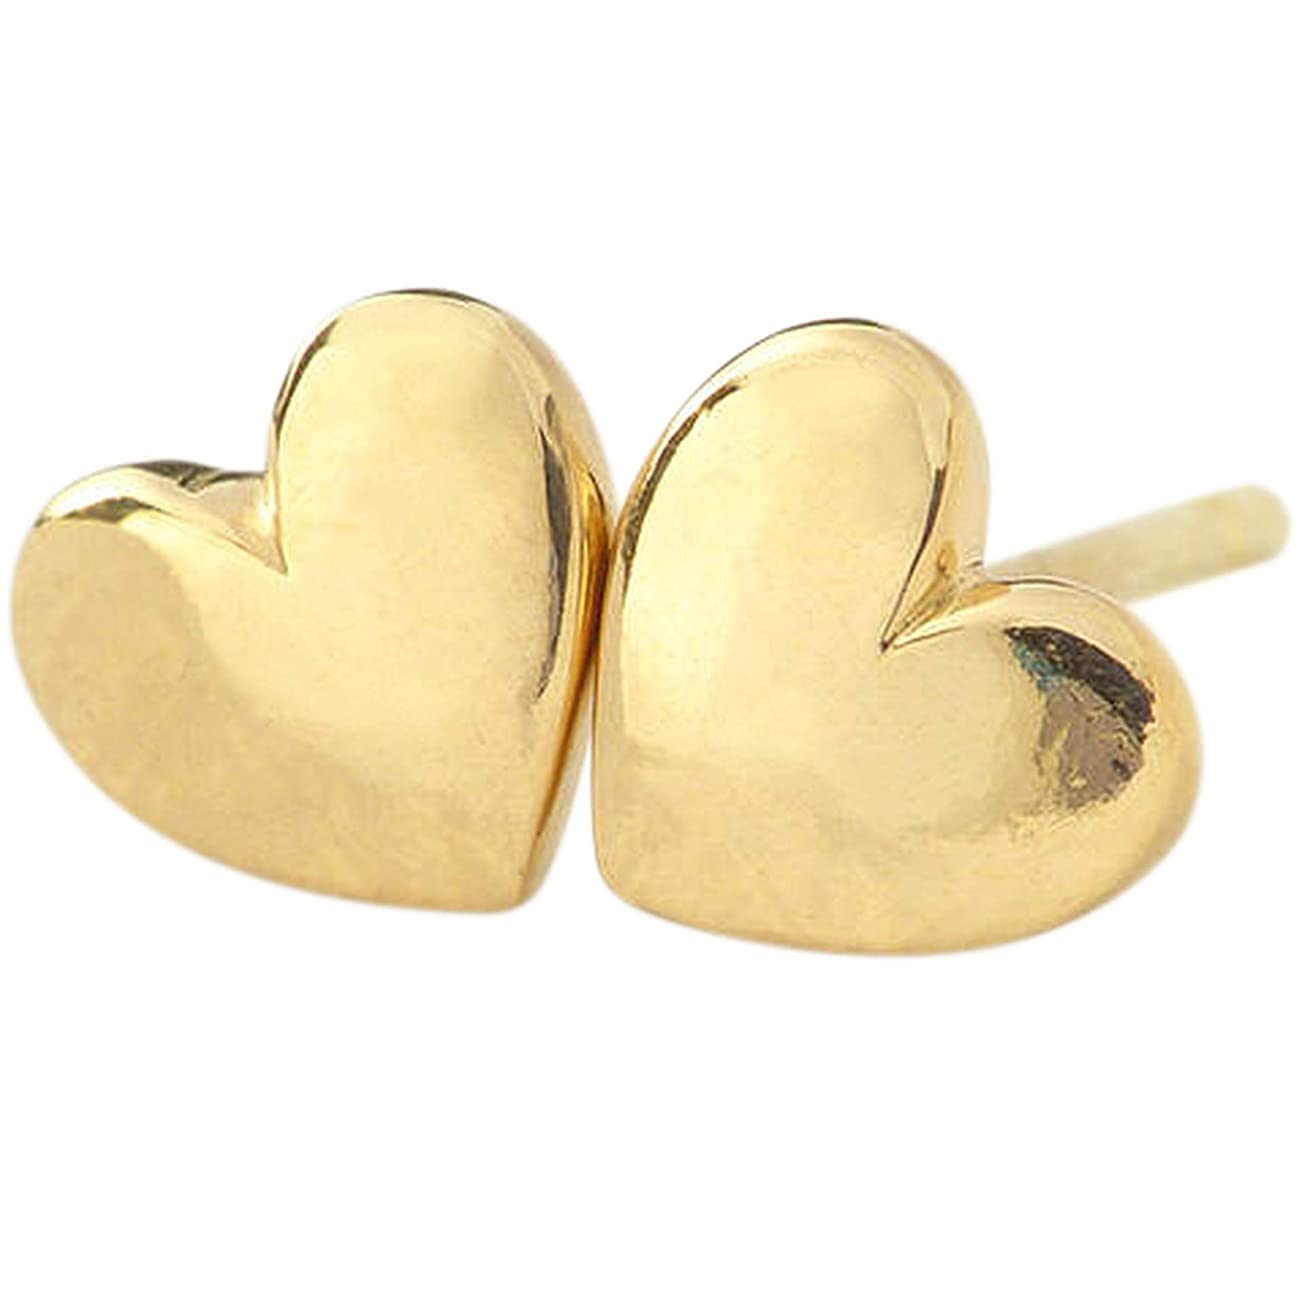 Lifetime Jewelry Heart Stud Earrings 24k Gold Premium Overlay Fashion Jewelry - Safe for Most Sensitive Ears with Lifetime Replacement Guarantee